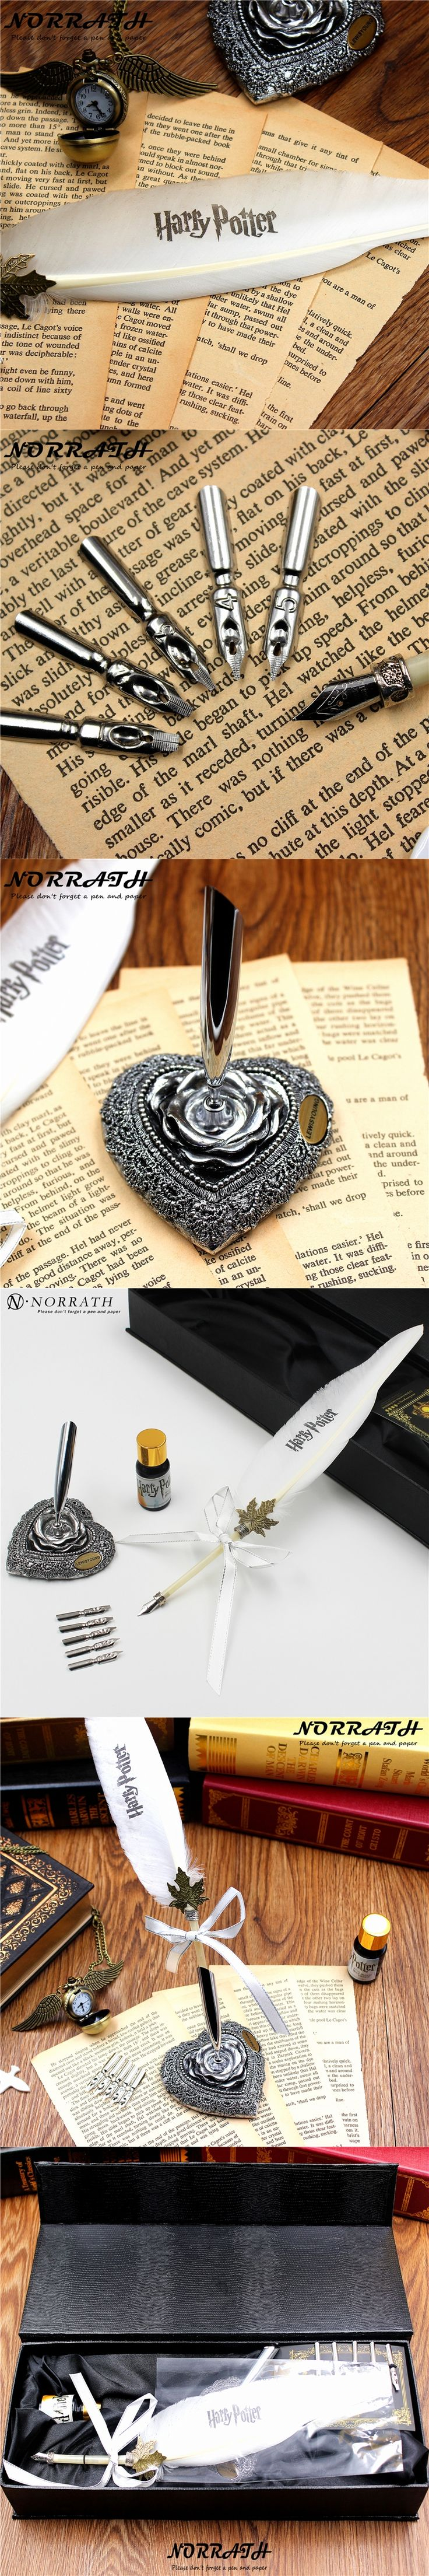 Harry Potter White Owl Vintage Feather Fountain Pen Iuxury Gift Box Quill Ink Pen Pen Rack 5 Nibs Signature Pen Stationery Set